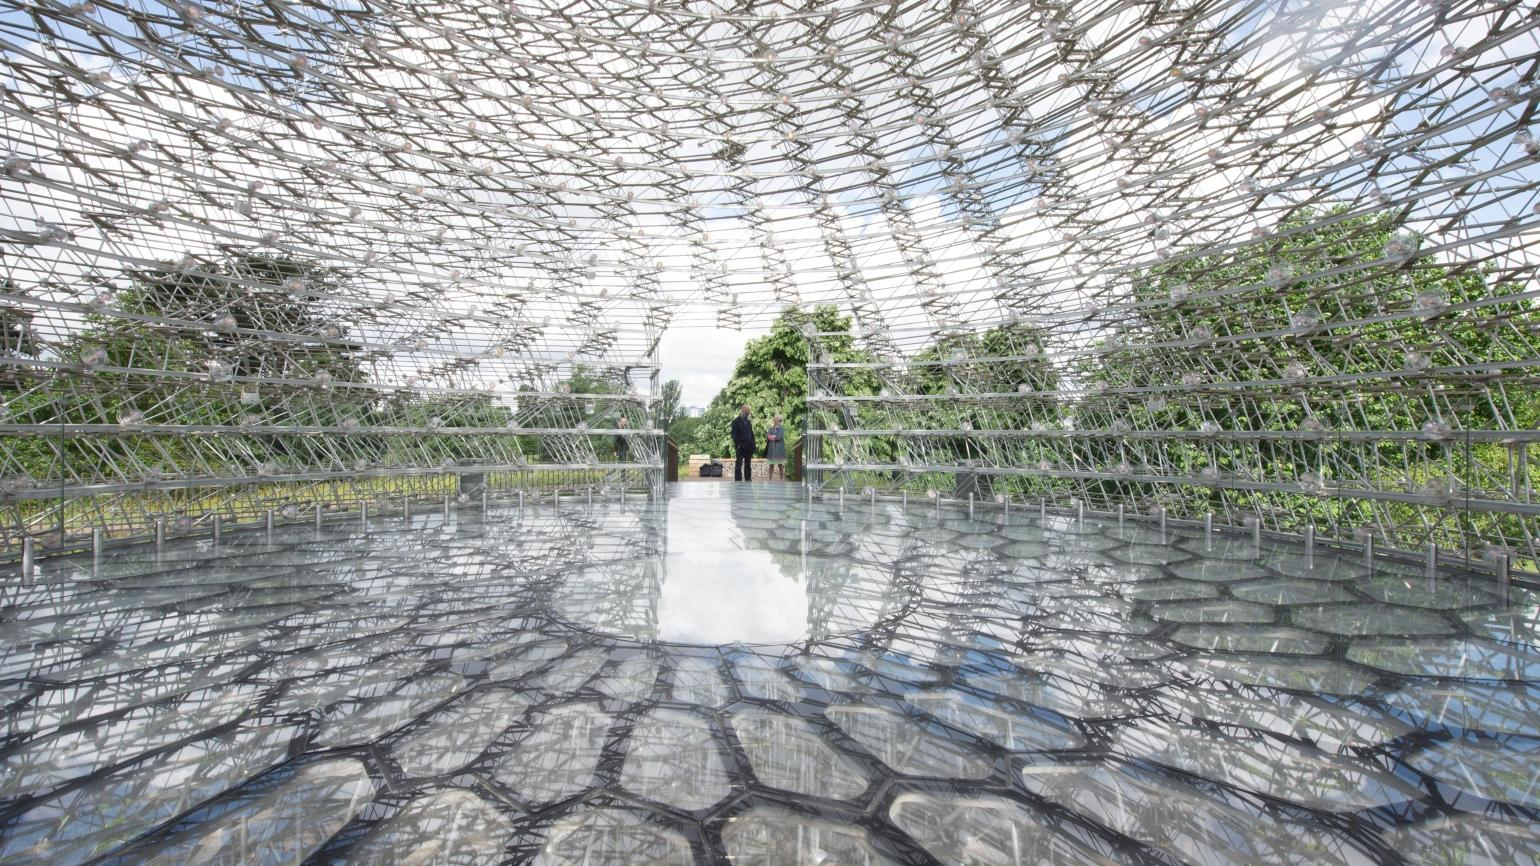 The Hive interior - a larger-than-life recreation of a real beehive at Kew